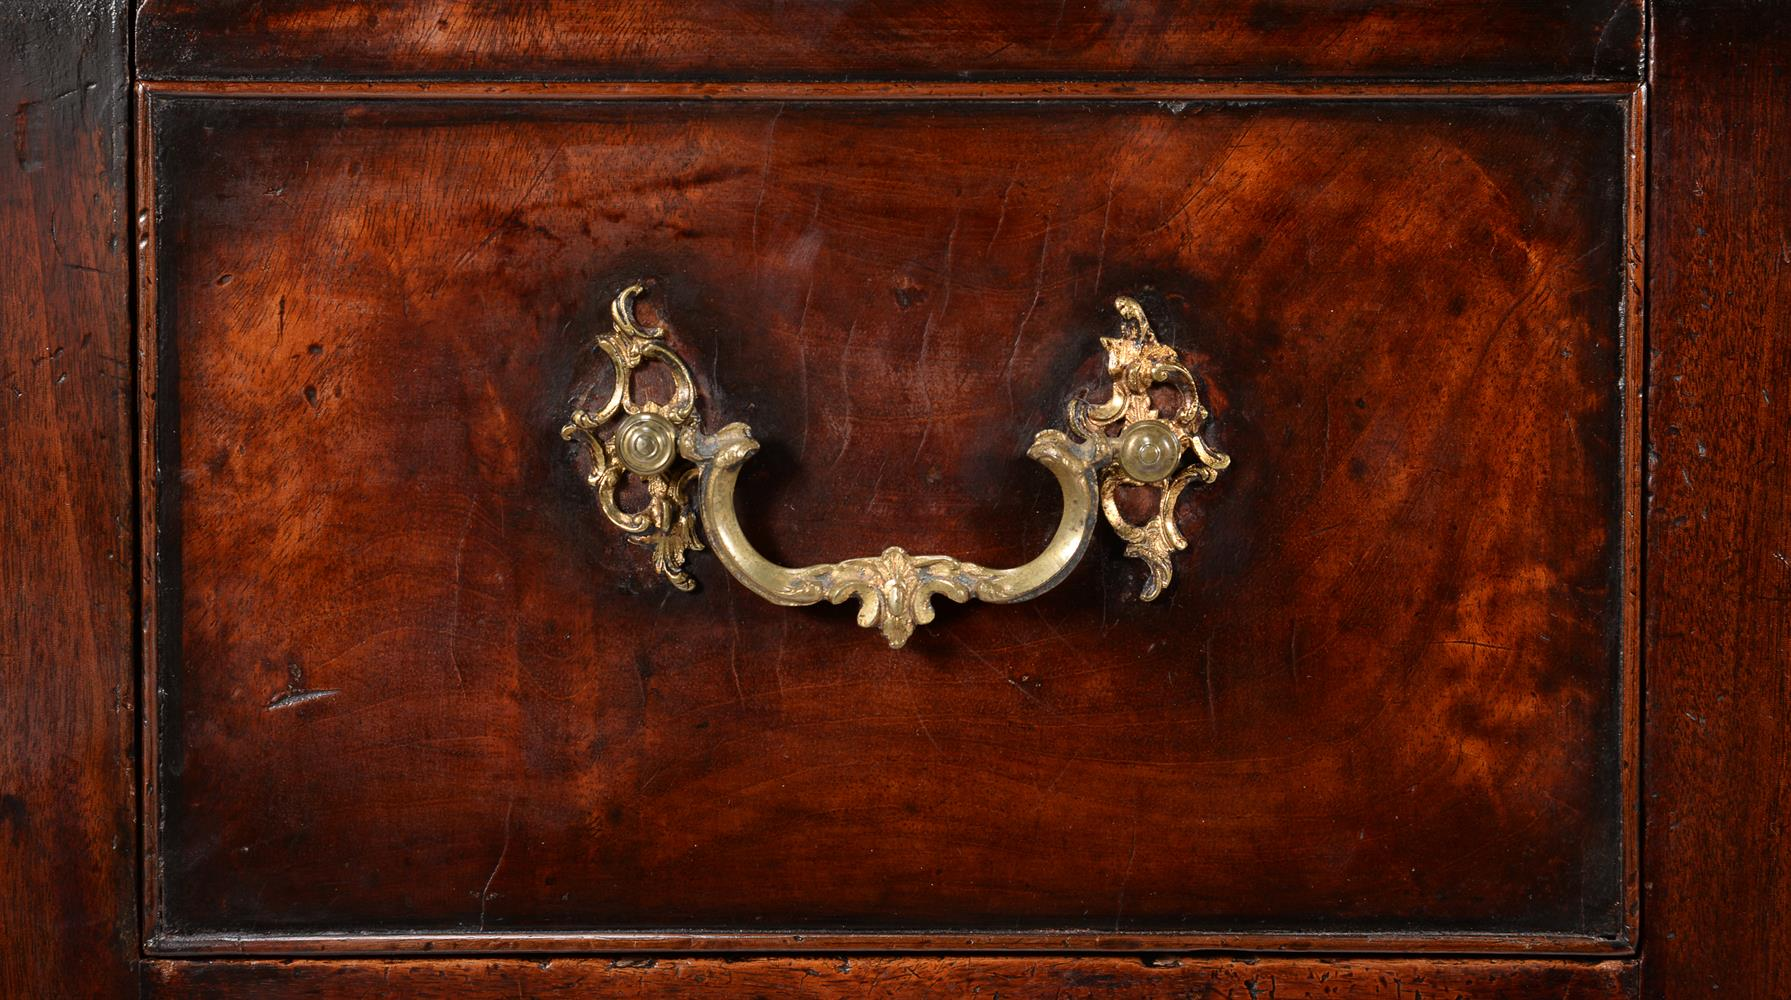 A GEORGE III MAHOGANY SERVING TABLE, CIRCA 1790 - Image 5 of 6